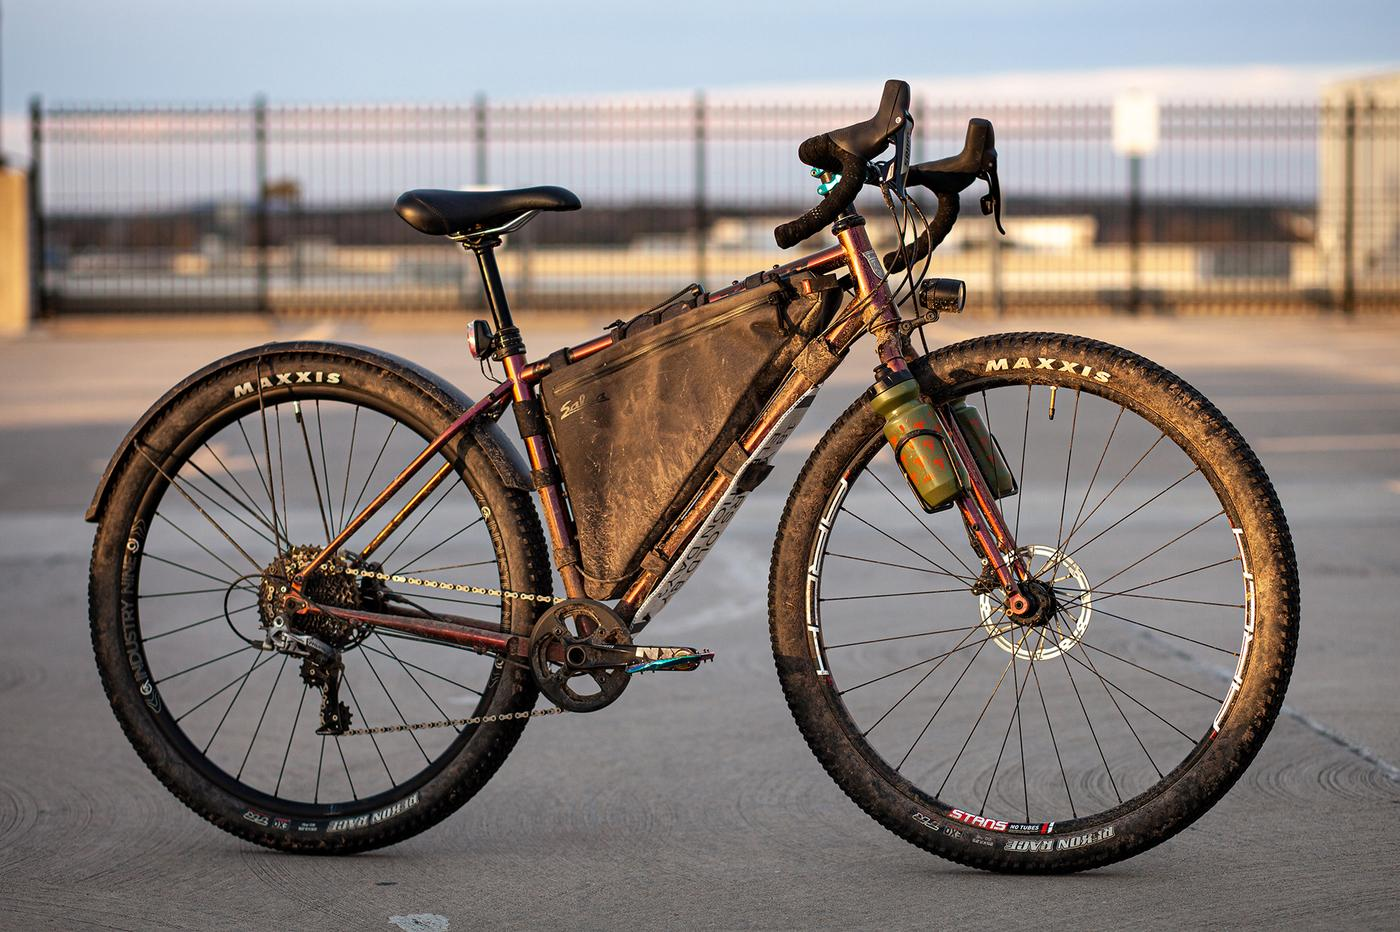 Readers' Rides: Jason's Sutra ULTD Build By Back Alley Bikes